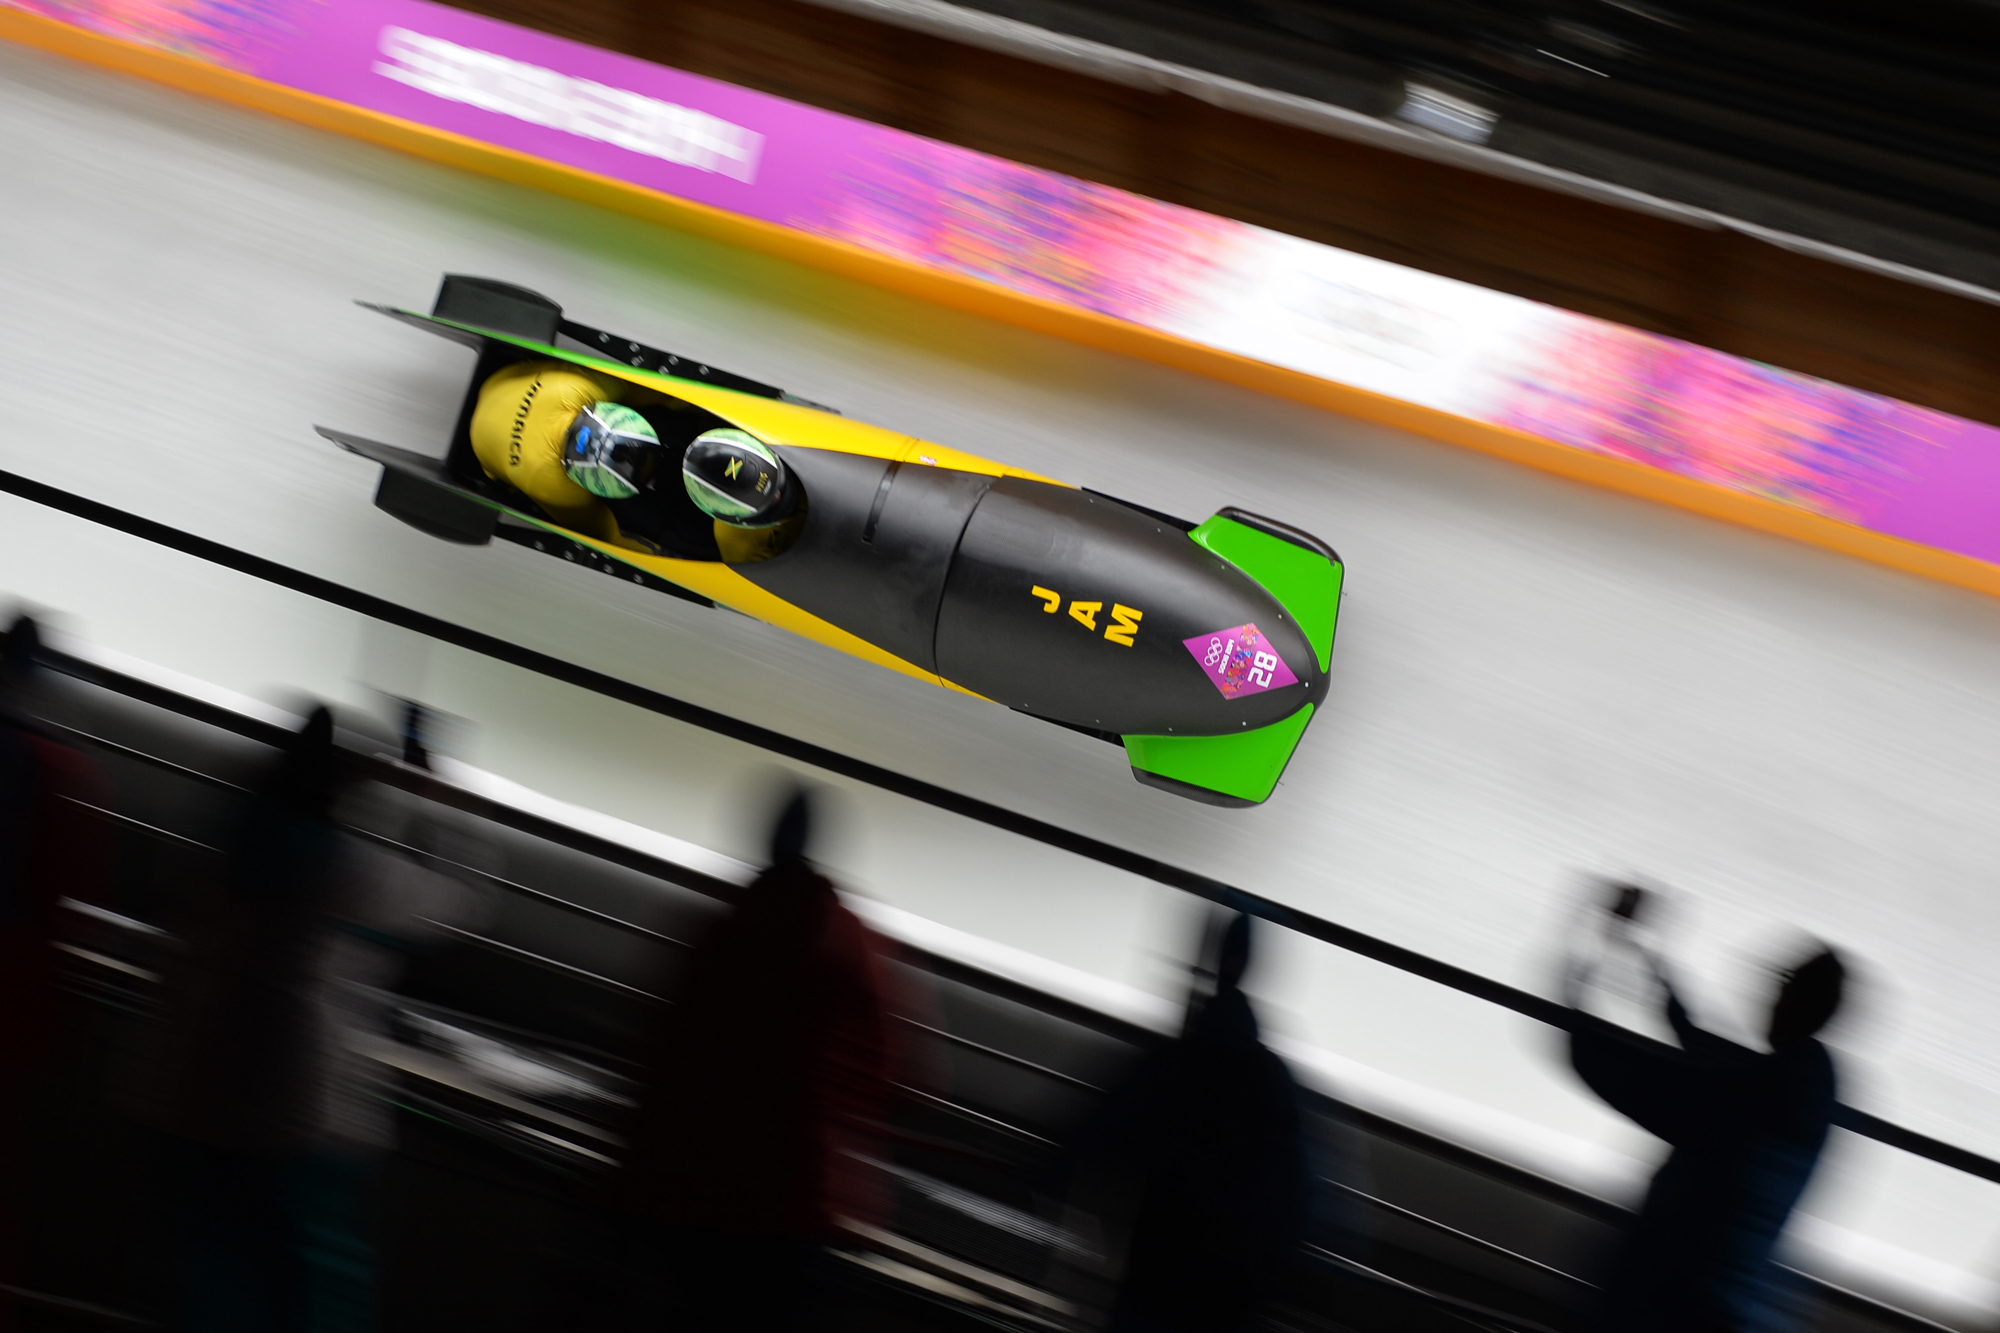 Jamaica-1 two-man bobsleigh steered by Winston Watts races in the Bobsleigh Two-man, Heat 1 at the Sanki Sliding Center in Rosa Khutor during the Sochi Winter Olympics on February 16, 2014.